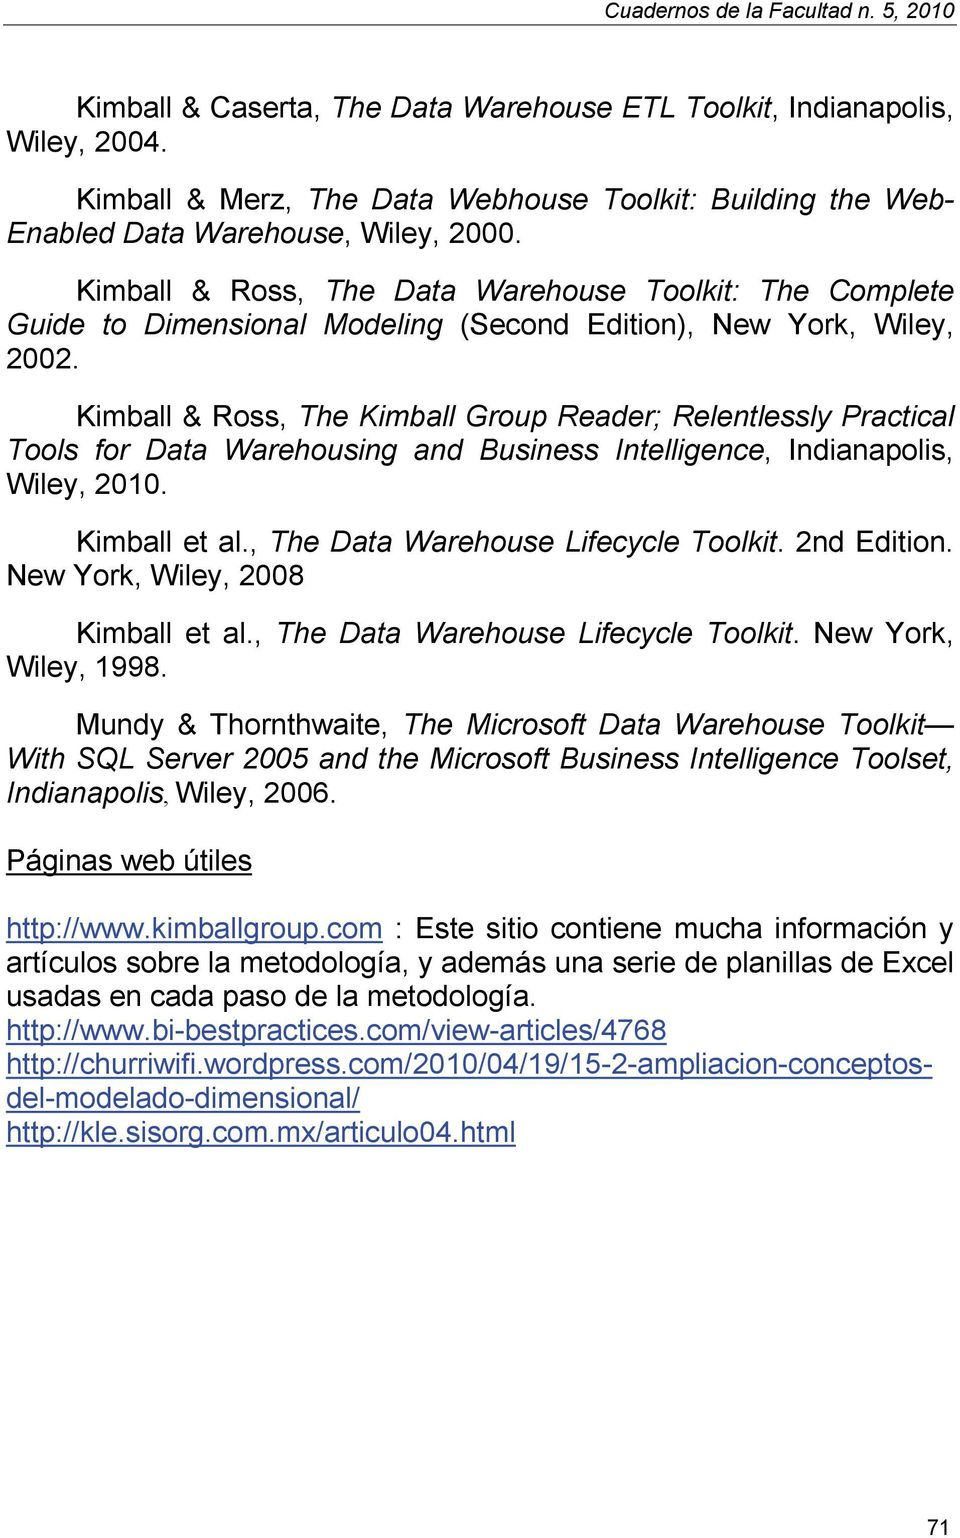 Kimball & Ross, The Data Warehouse Toolkit: The Complete Guide to Dimensional Modeling (Second Edition), New York, Wiley, 2002.